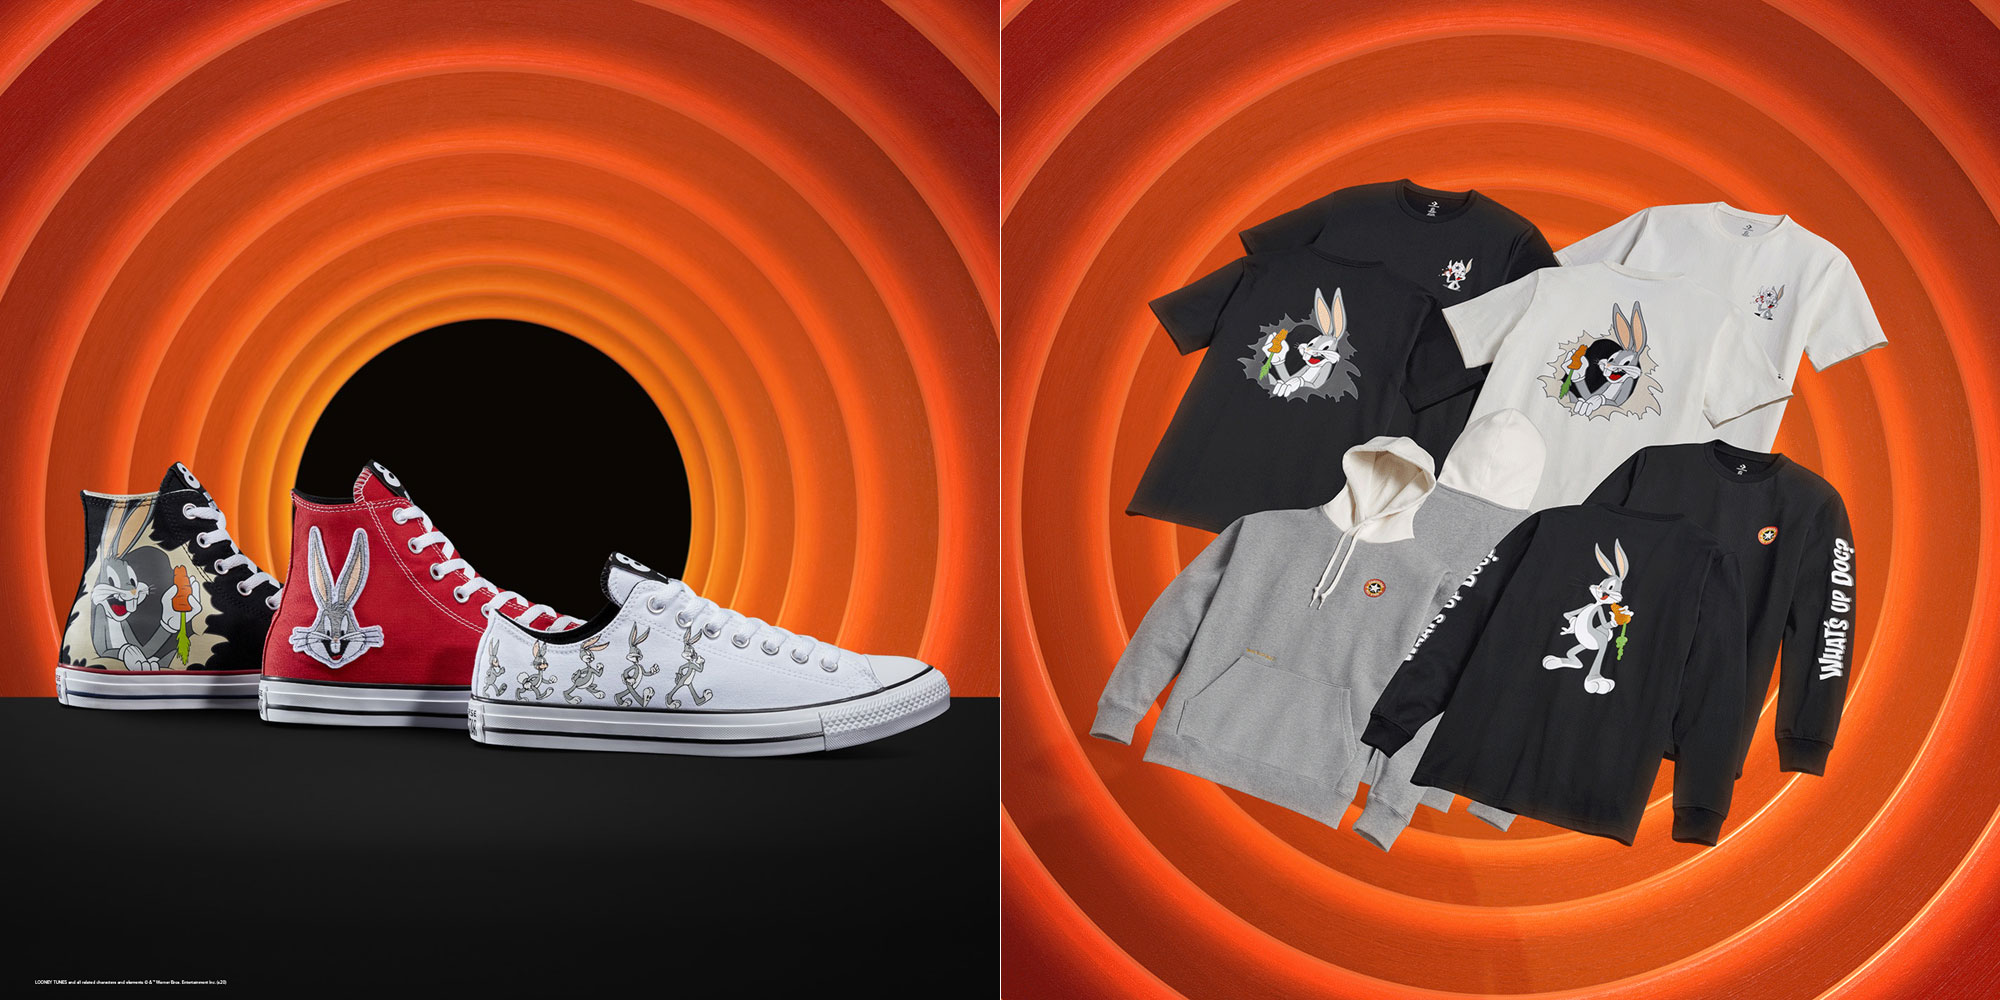 converse-bugs-bunny-shoes-apparel